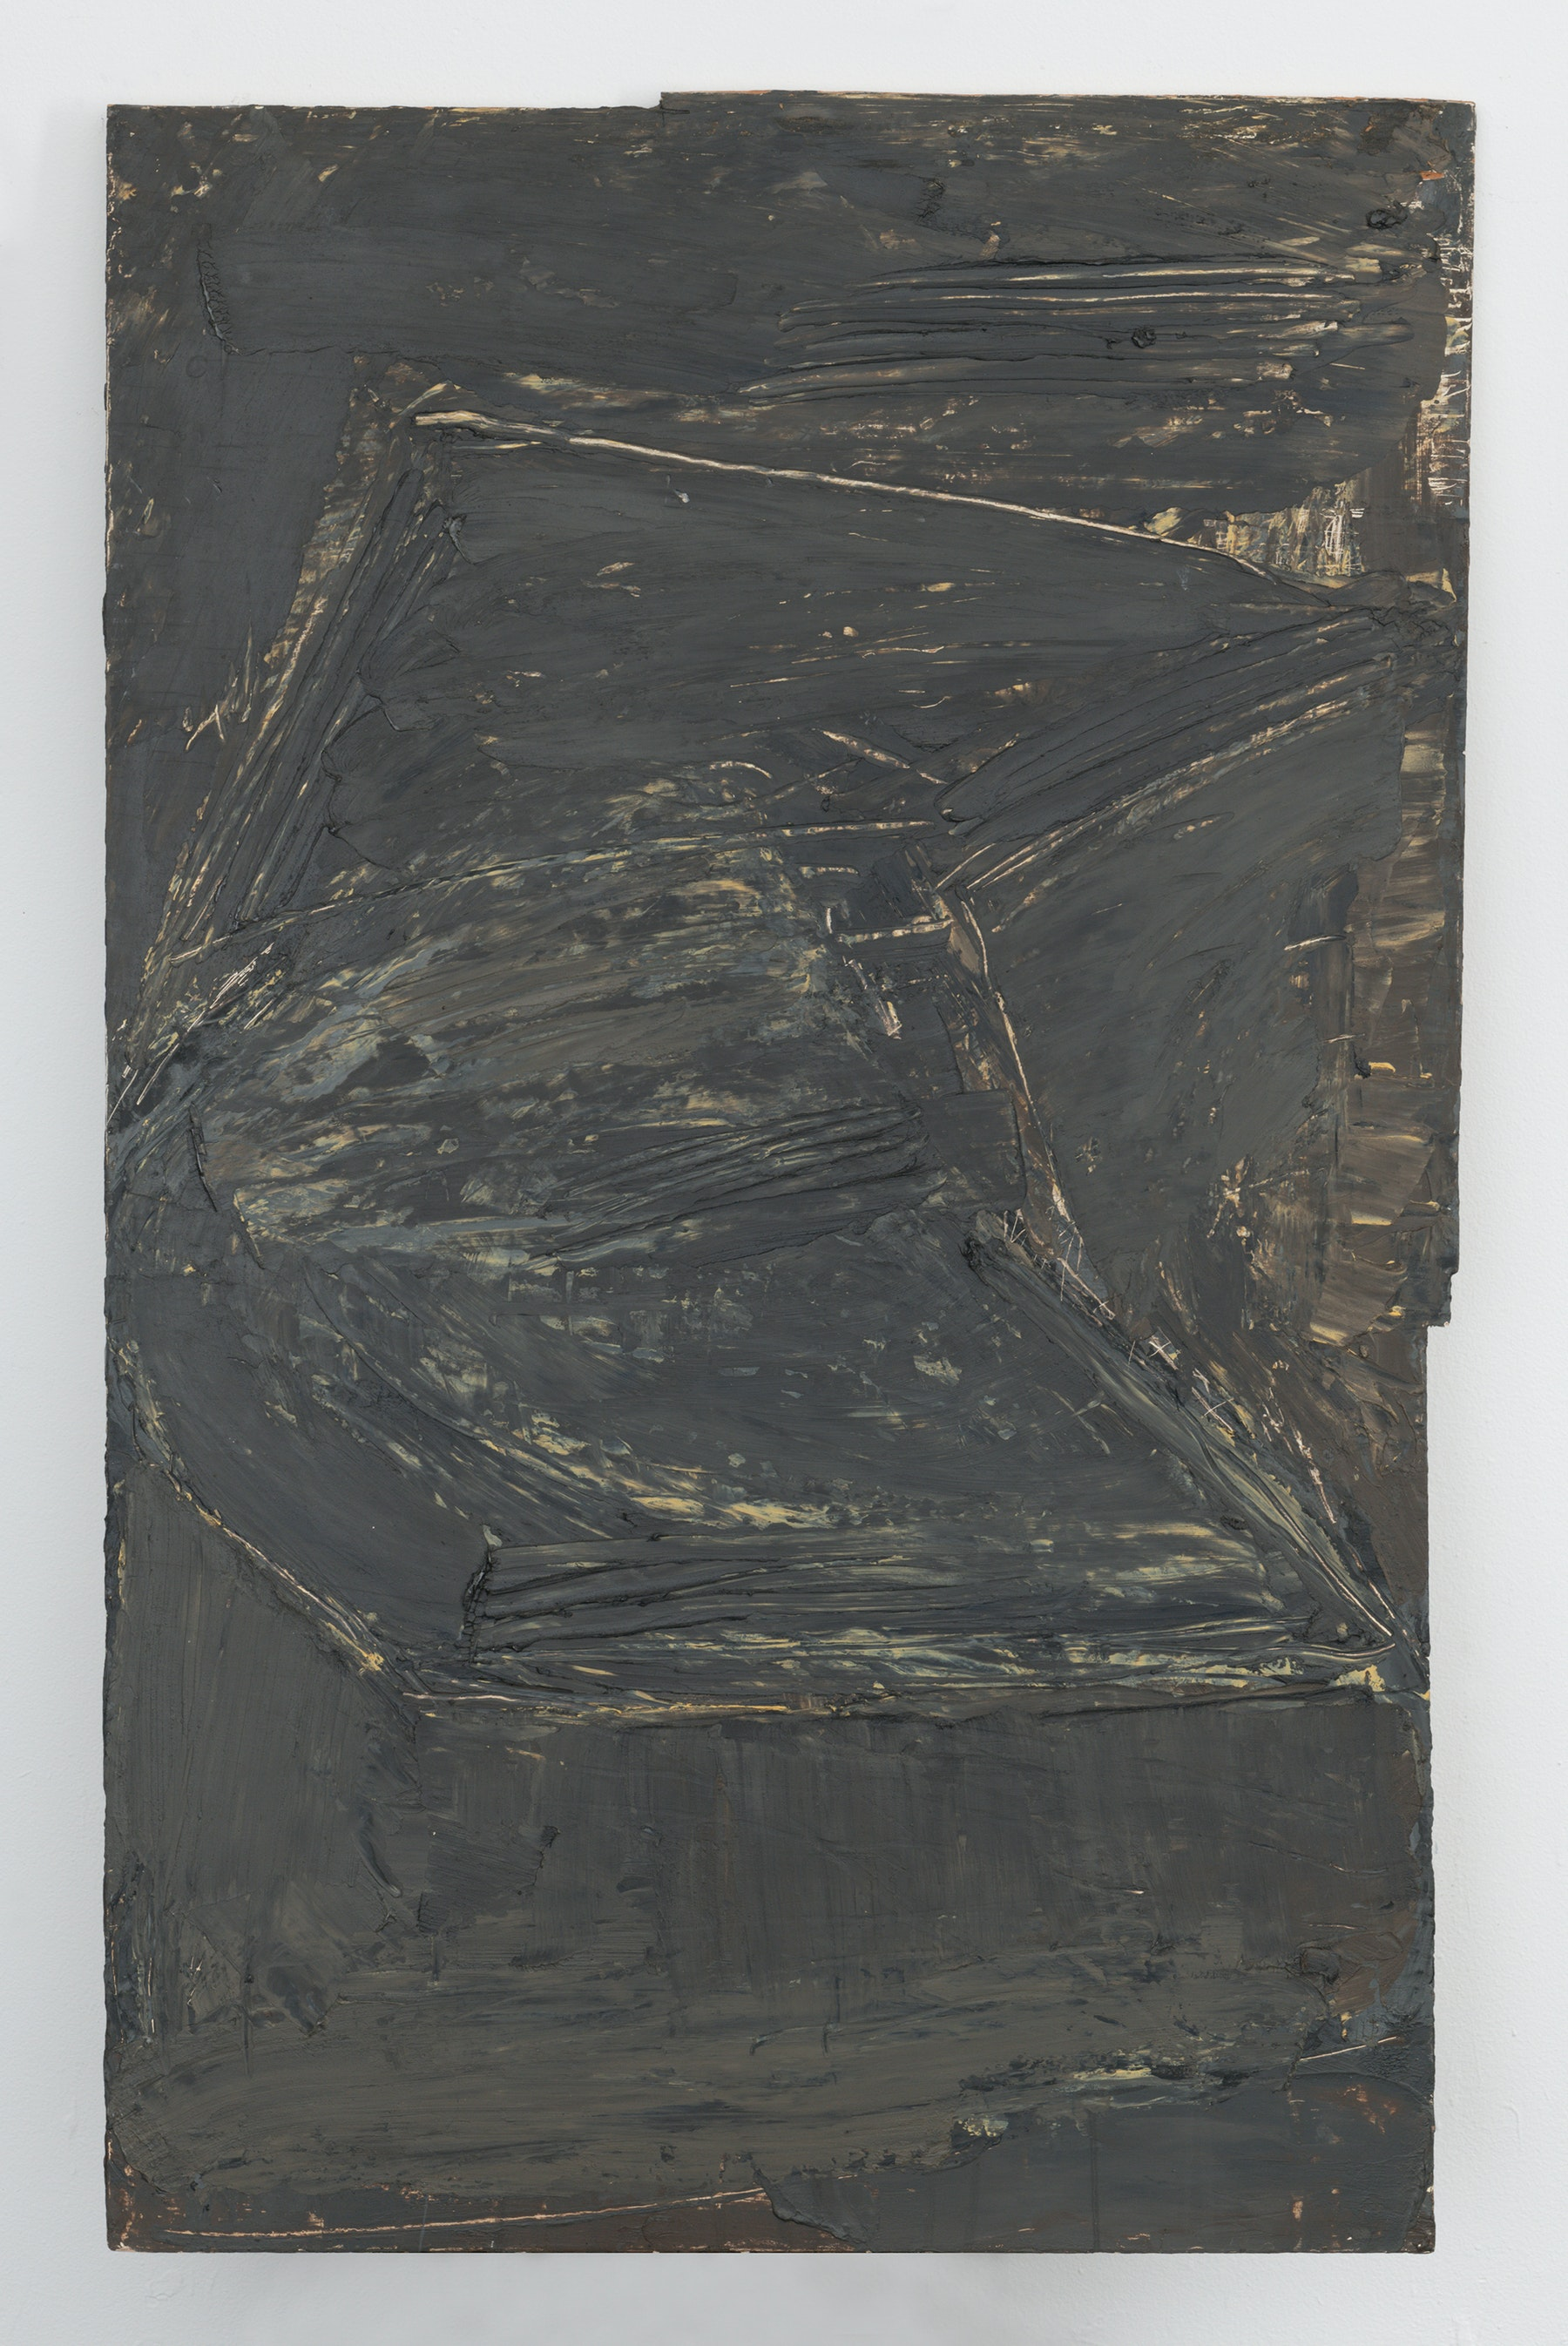 """Louise Fishman """"ST. LUCY, MARTYR,"""" 1974 Oil and wax on plywood 38.25 x 23.75"""" [HxW] (97.16 x 60.33 cm) Inventory #FIS175 Courtesy of the artist and Vielmetter Los Angeles Photo credit: Adam Reich"""